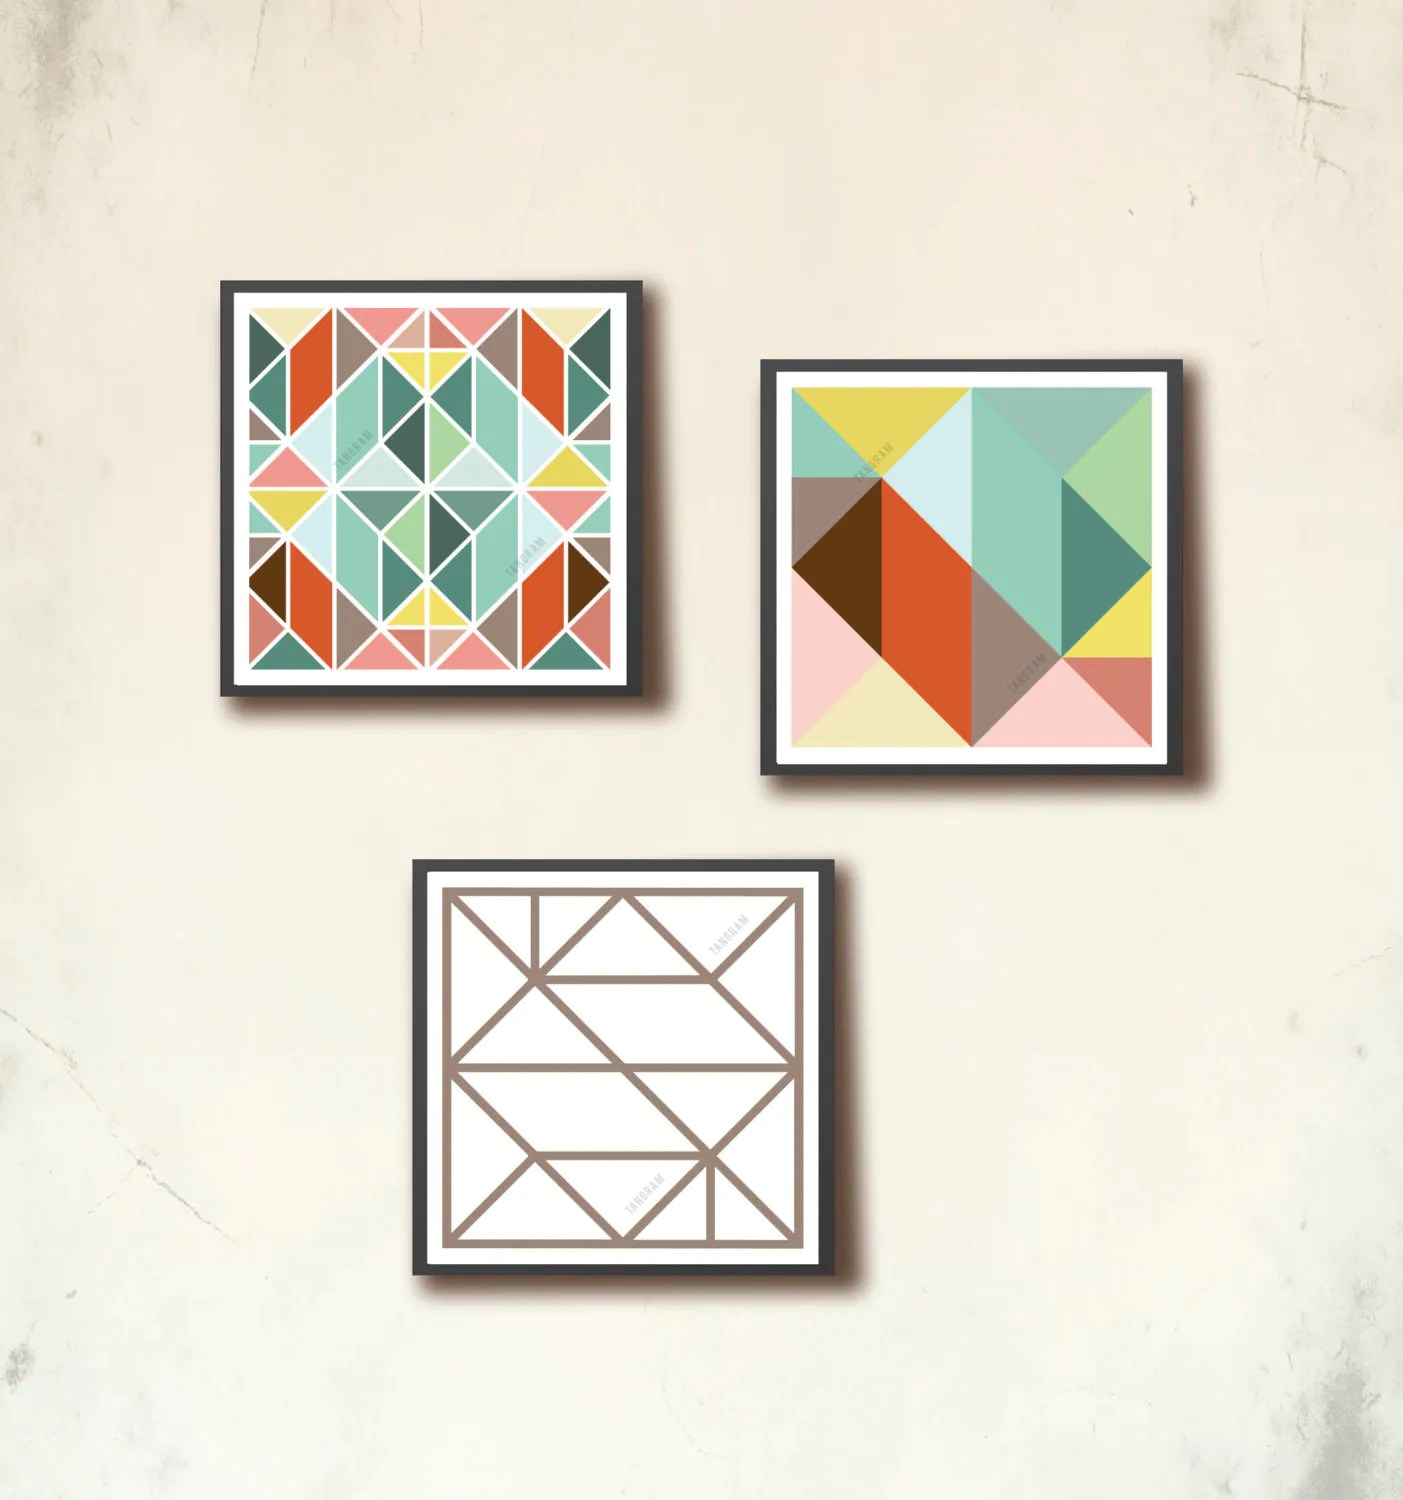 Affiches Scandinaves Scandinavian Square Poster Set 3 Mini Geometric Art Prints 4 X 4in Affiches Scandinaves Tangram Squares Modern Wall Art Tangramartworks